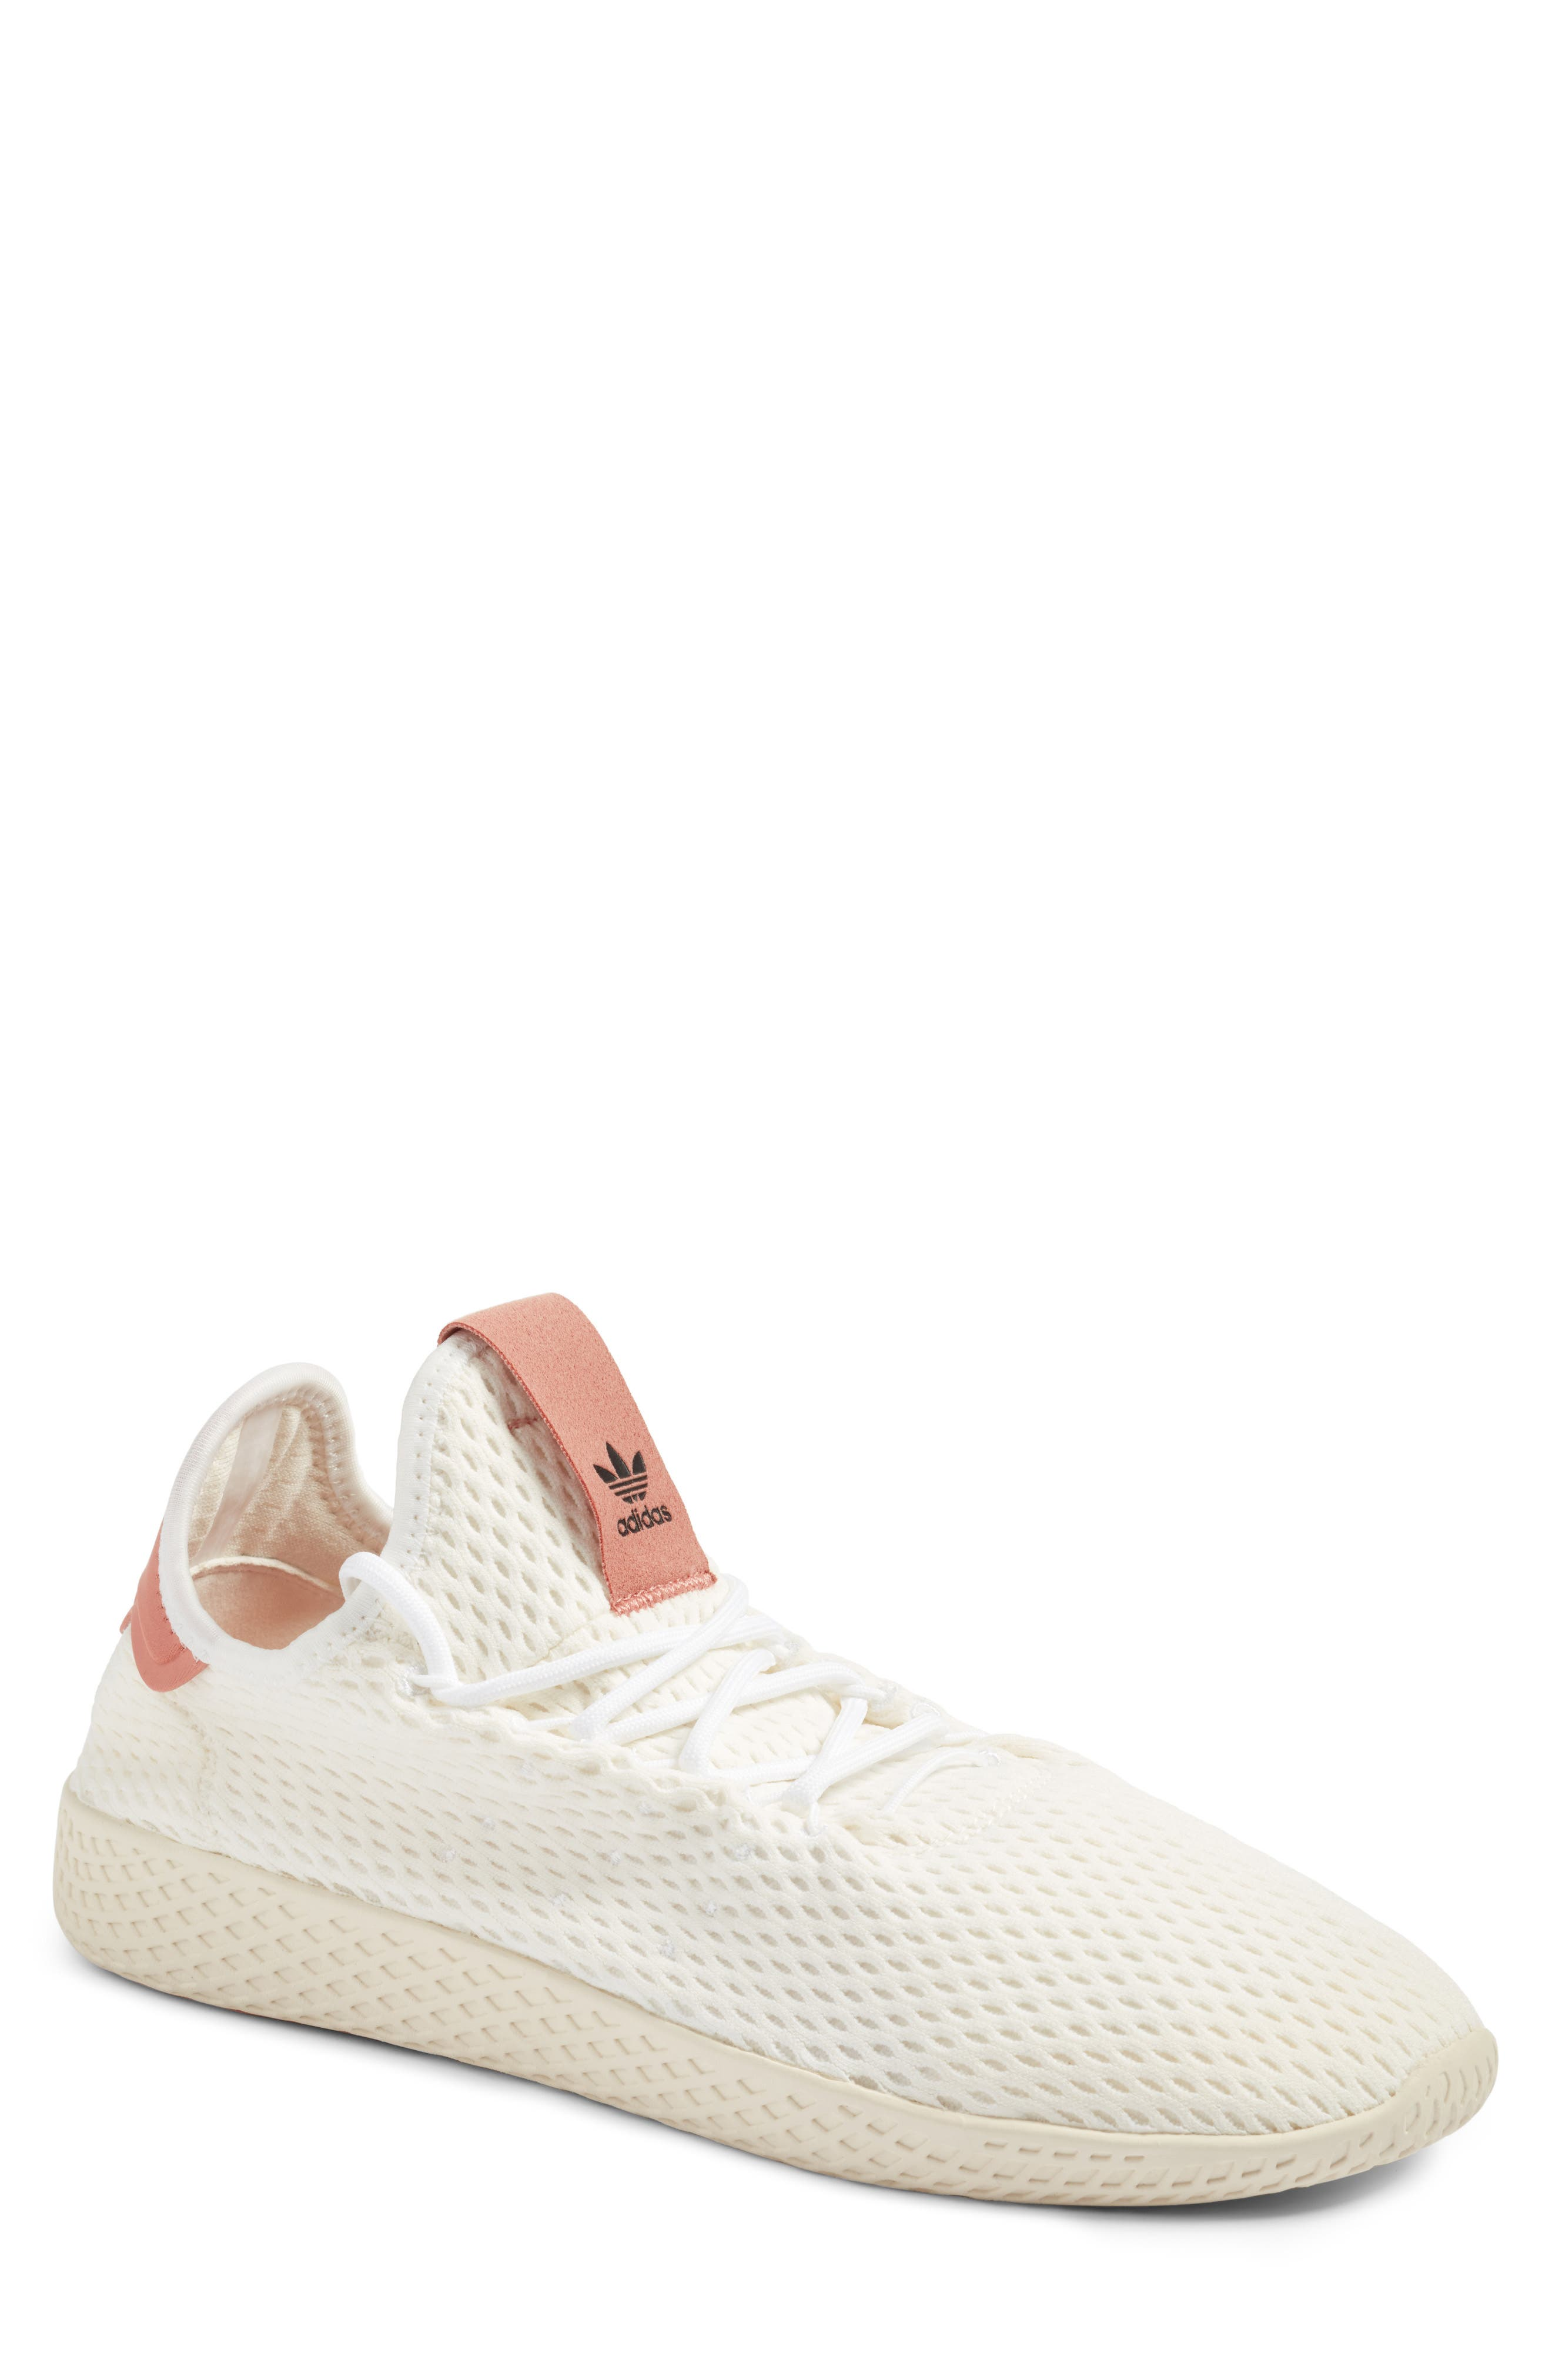 Pharrell Williams Tennis Hu Sneaker,                         Main,                         color, White/ Pink